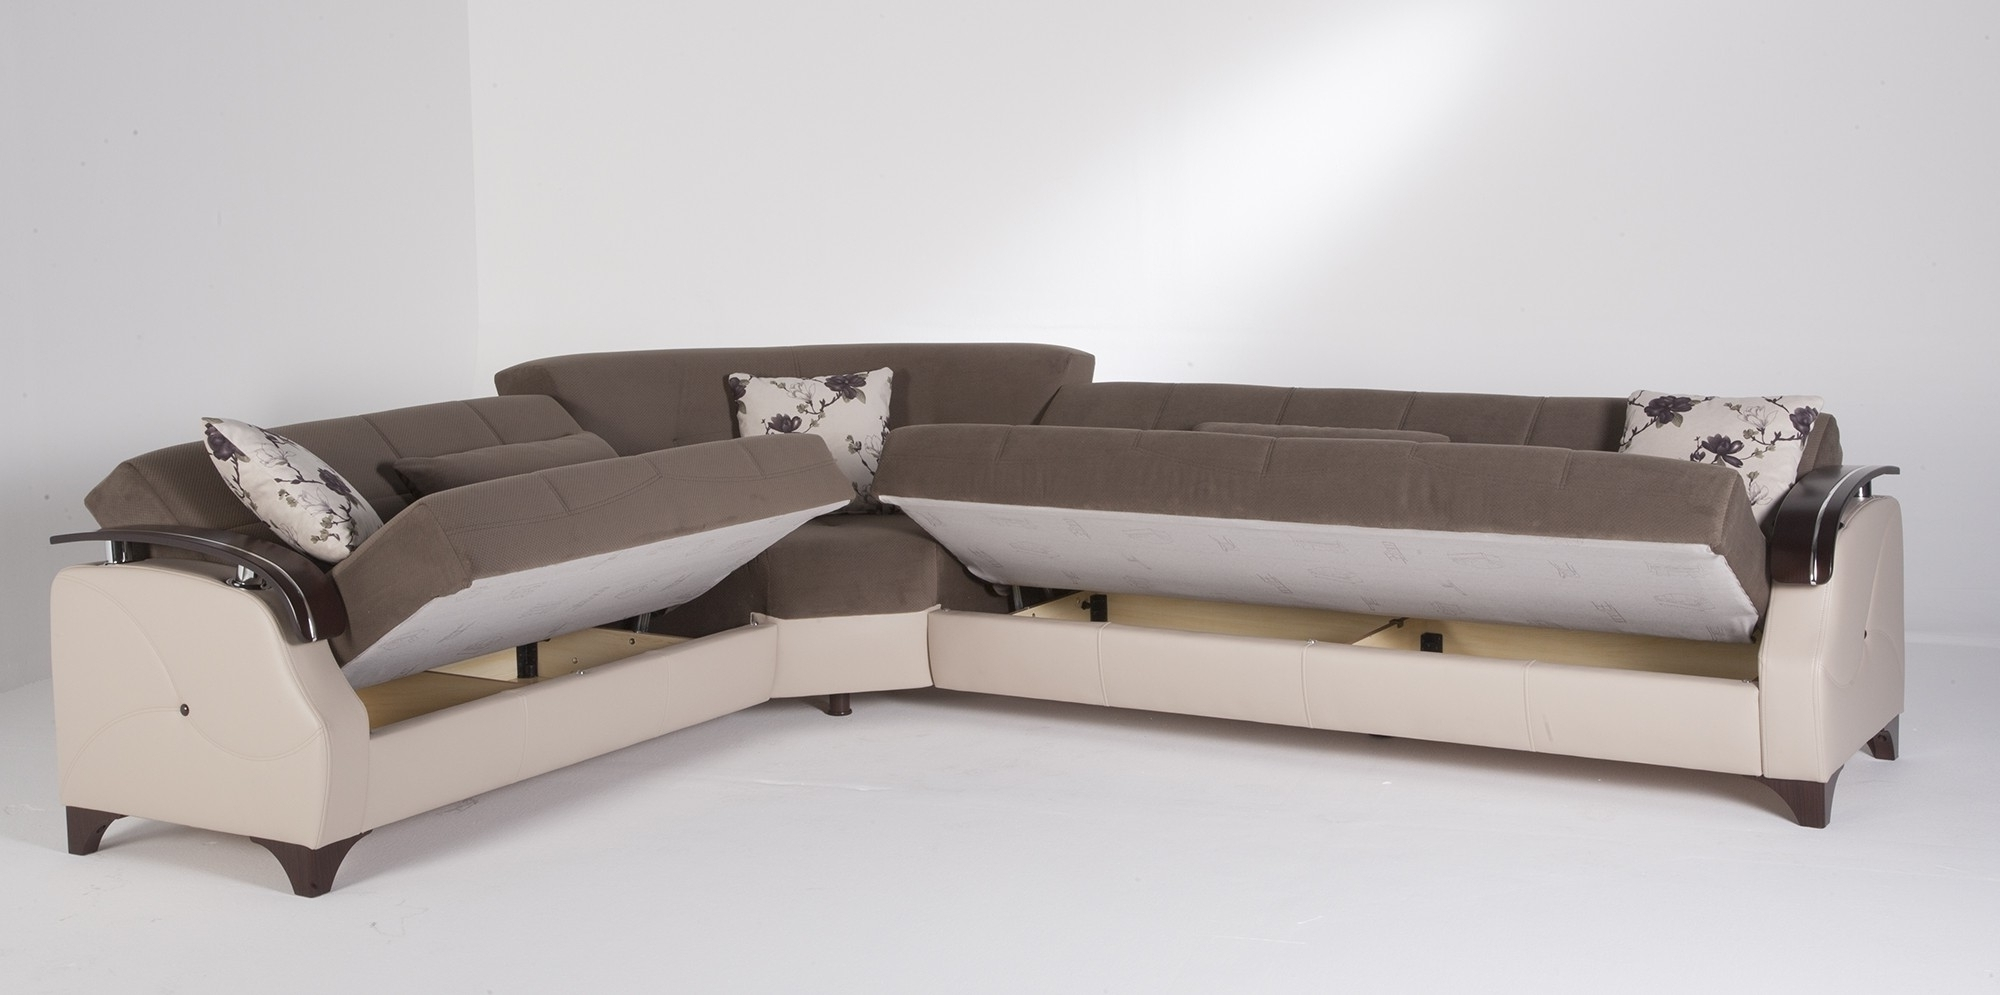 Famous Elegant And Exclusive Modern Sleeper Sofa — The Home Redesign Intended For Sectional Sleeper Sofas With Chaise (View 4 of 15)